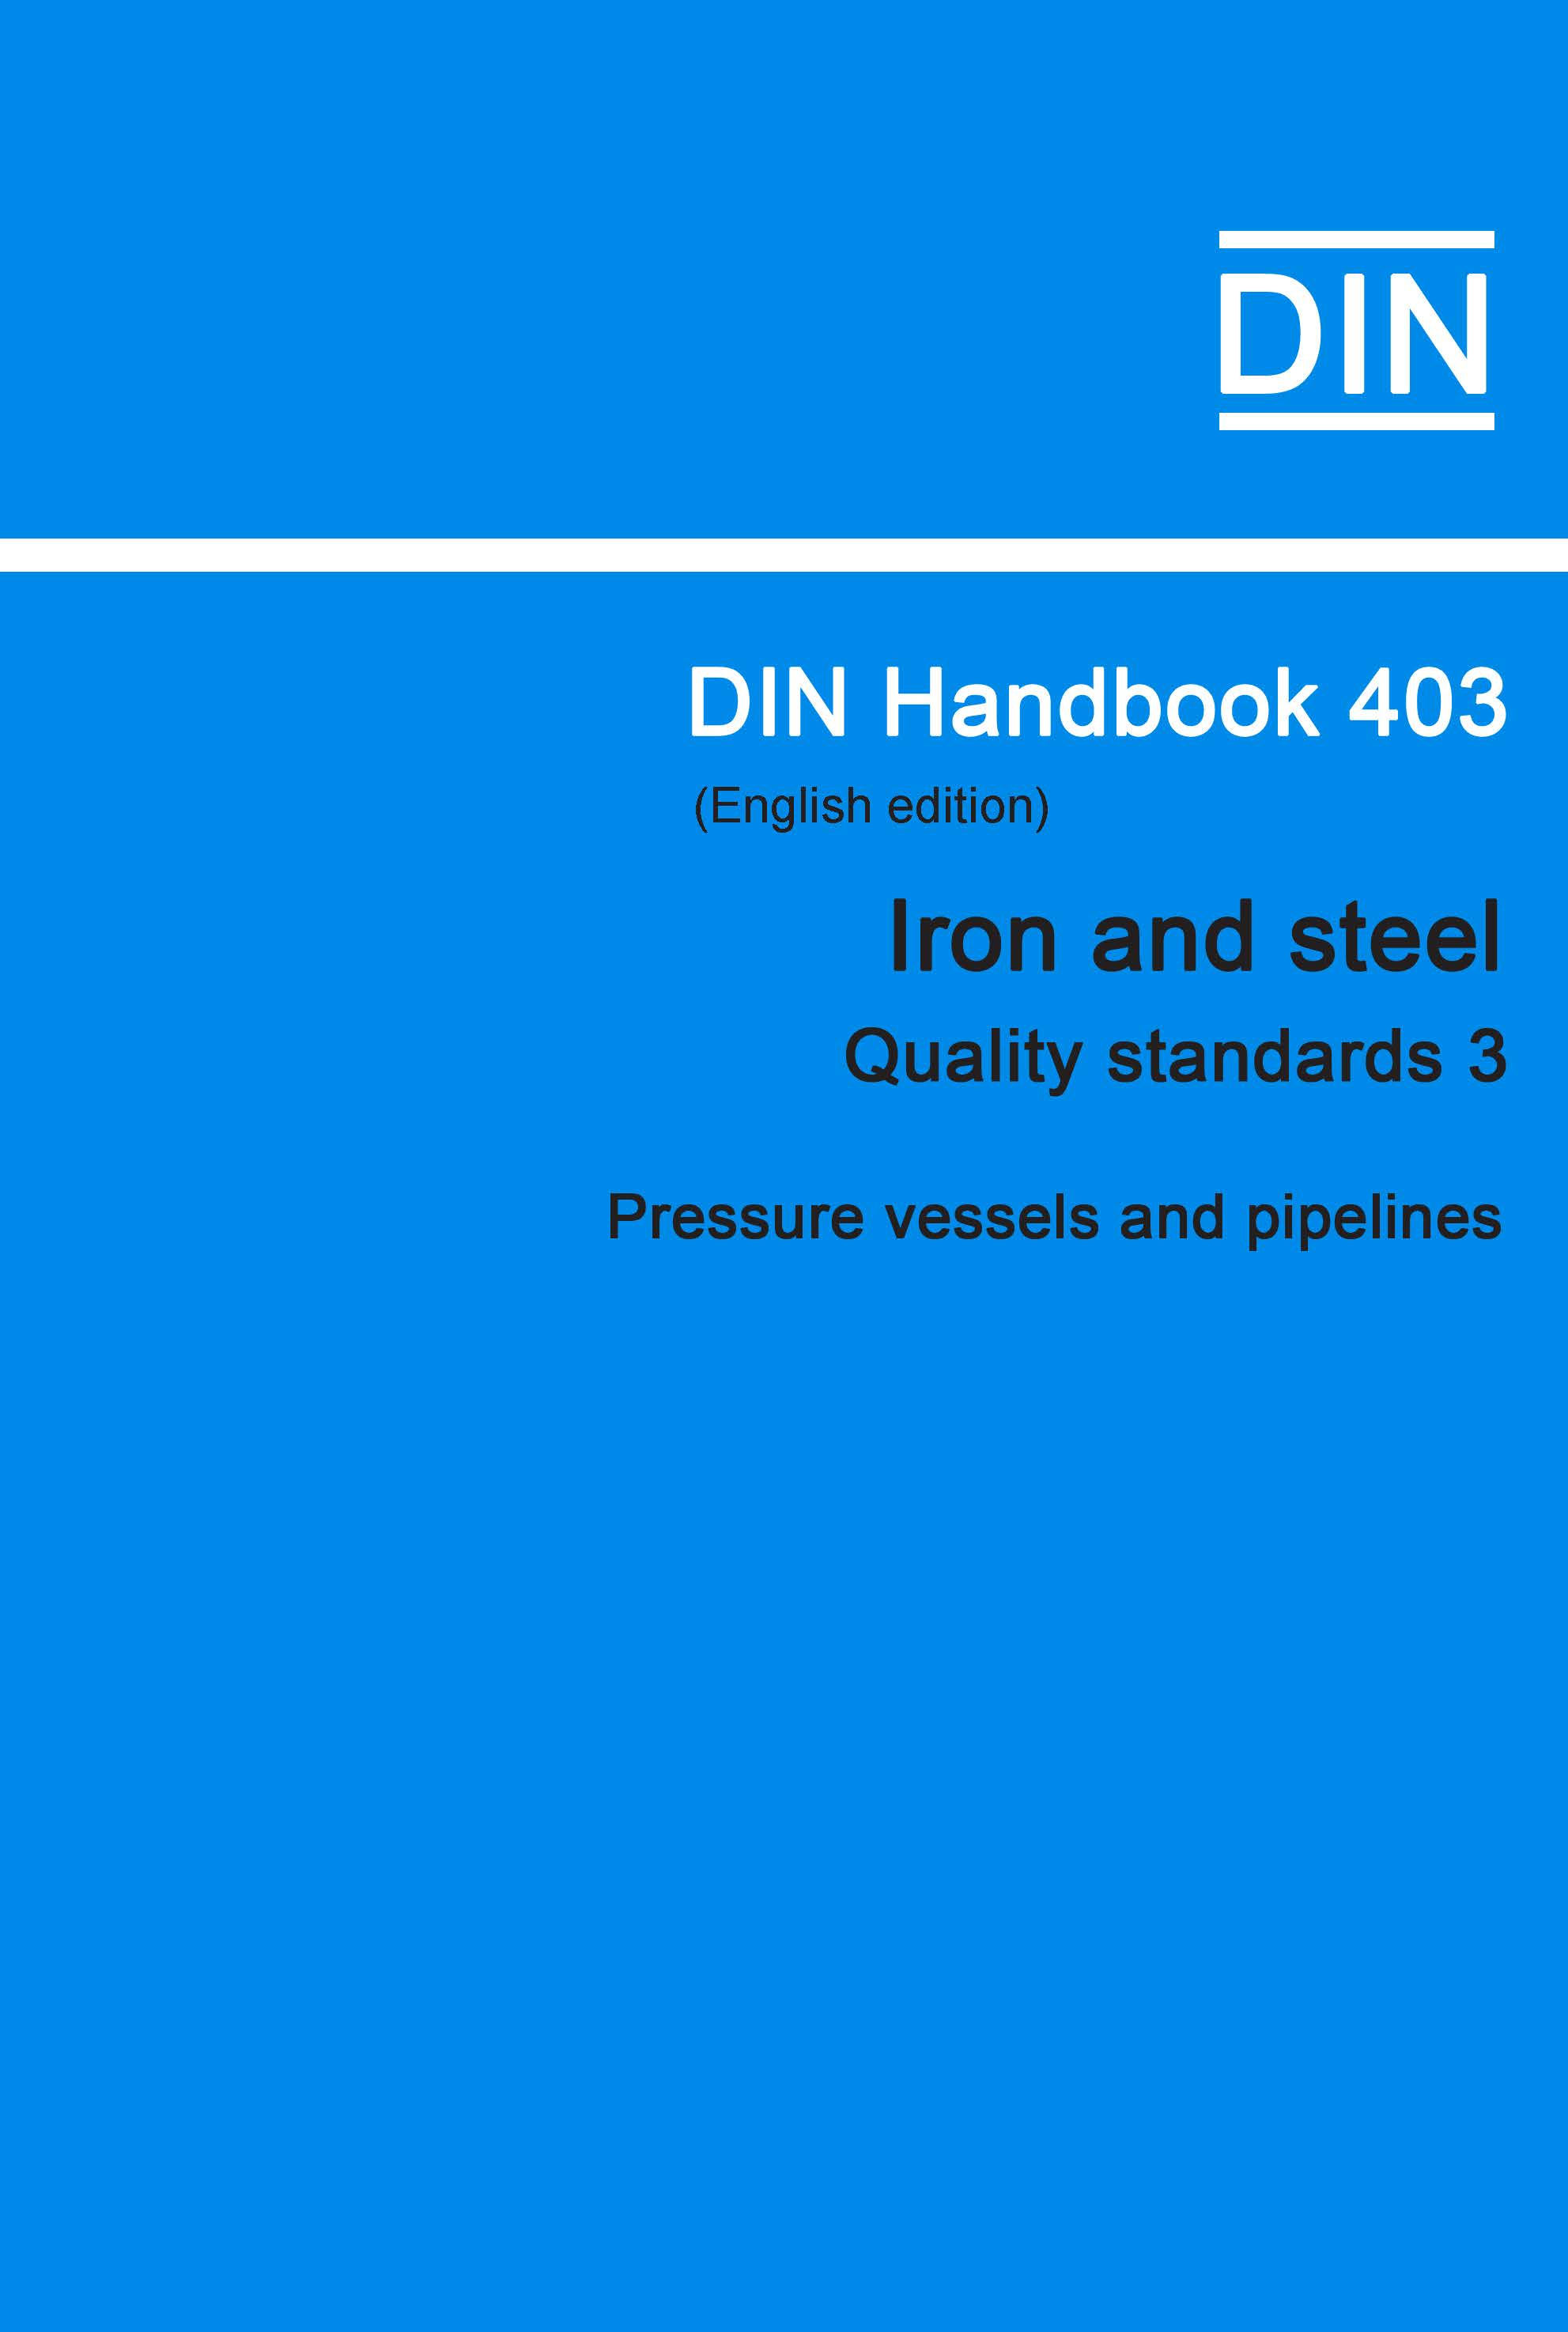 (DIN Handbook  403 Iron And Steel (Quality Standar...